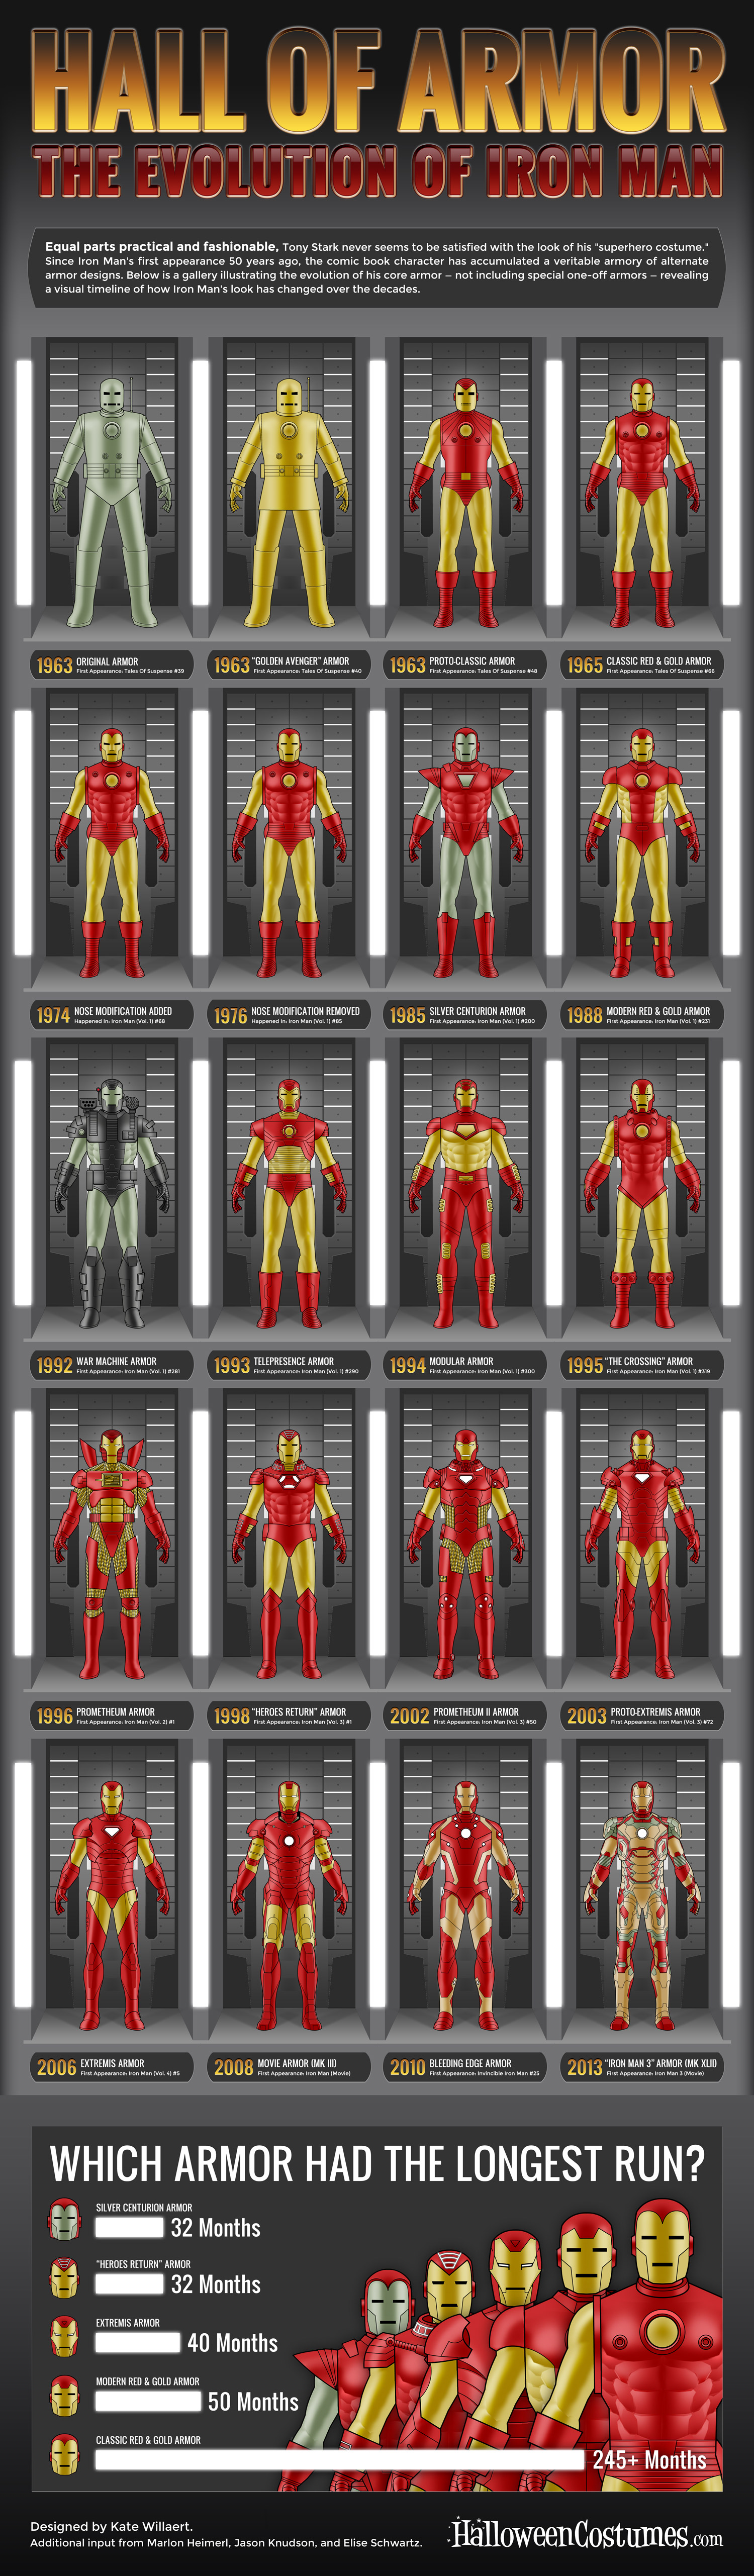 hall-of-armor-the-evolution-of-iron-man_51827e3fb828f